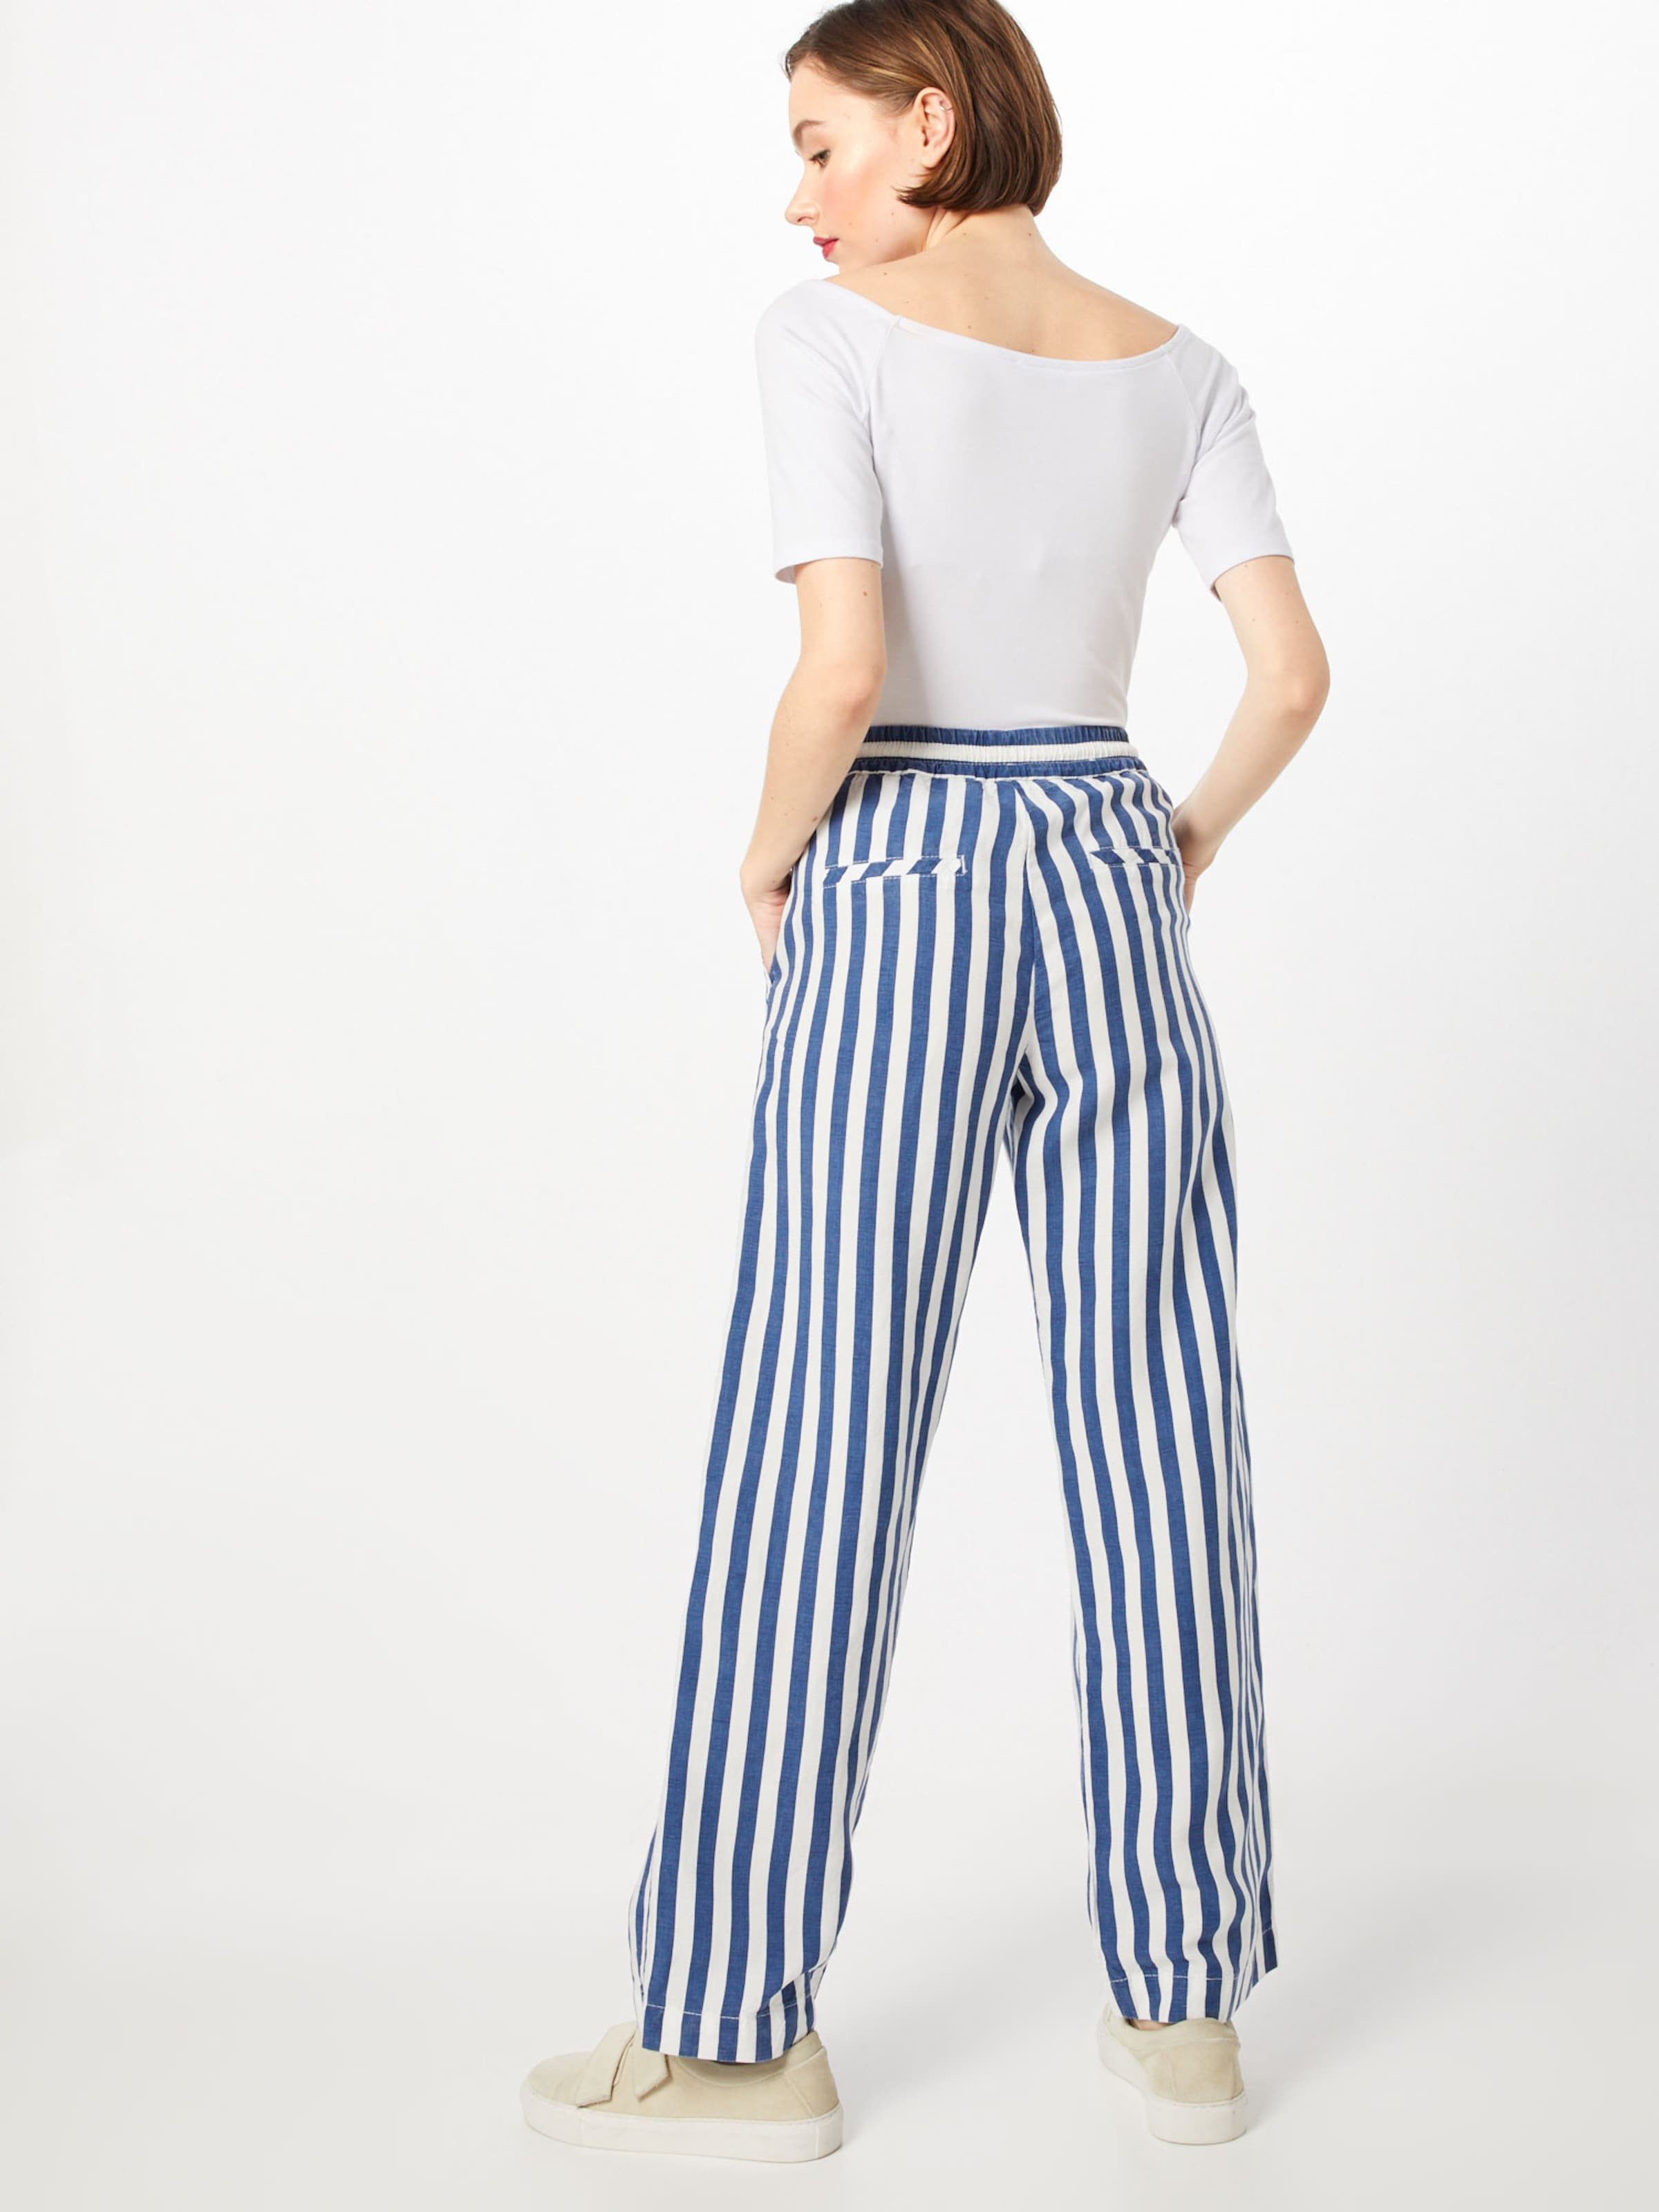 Pantalon Royal BleuBlanc En Richamp; WxBoerCQd